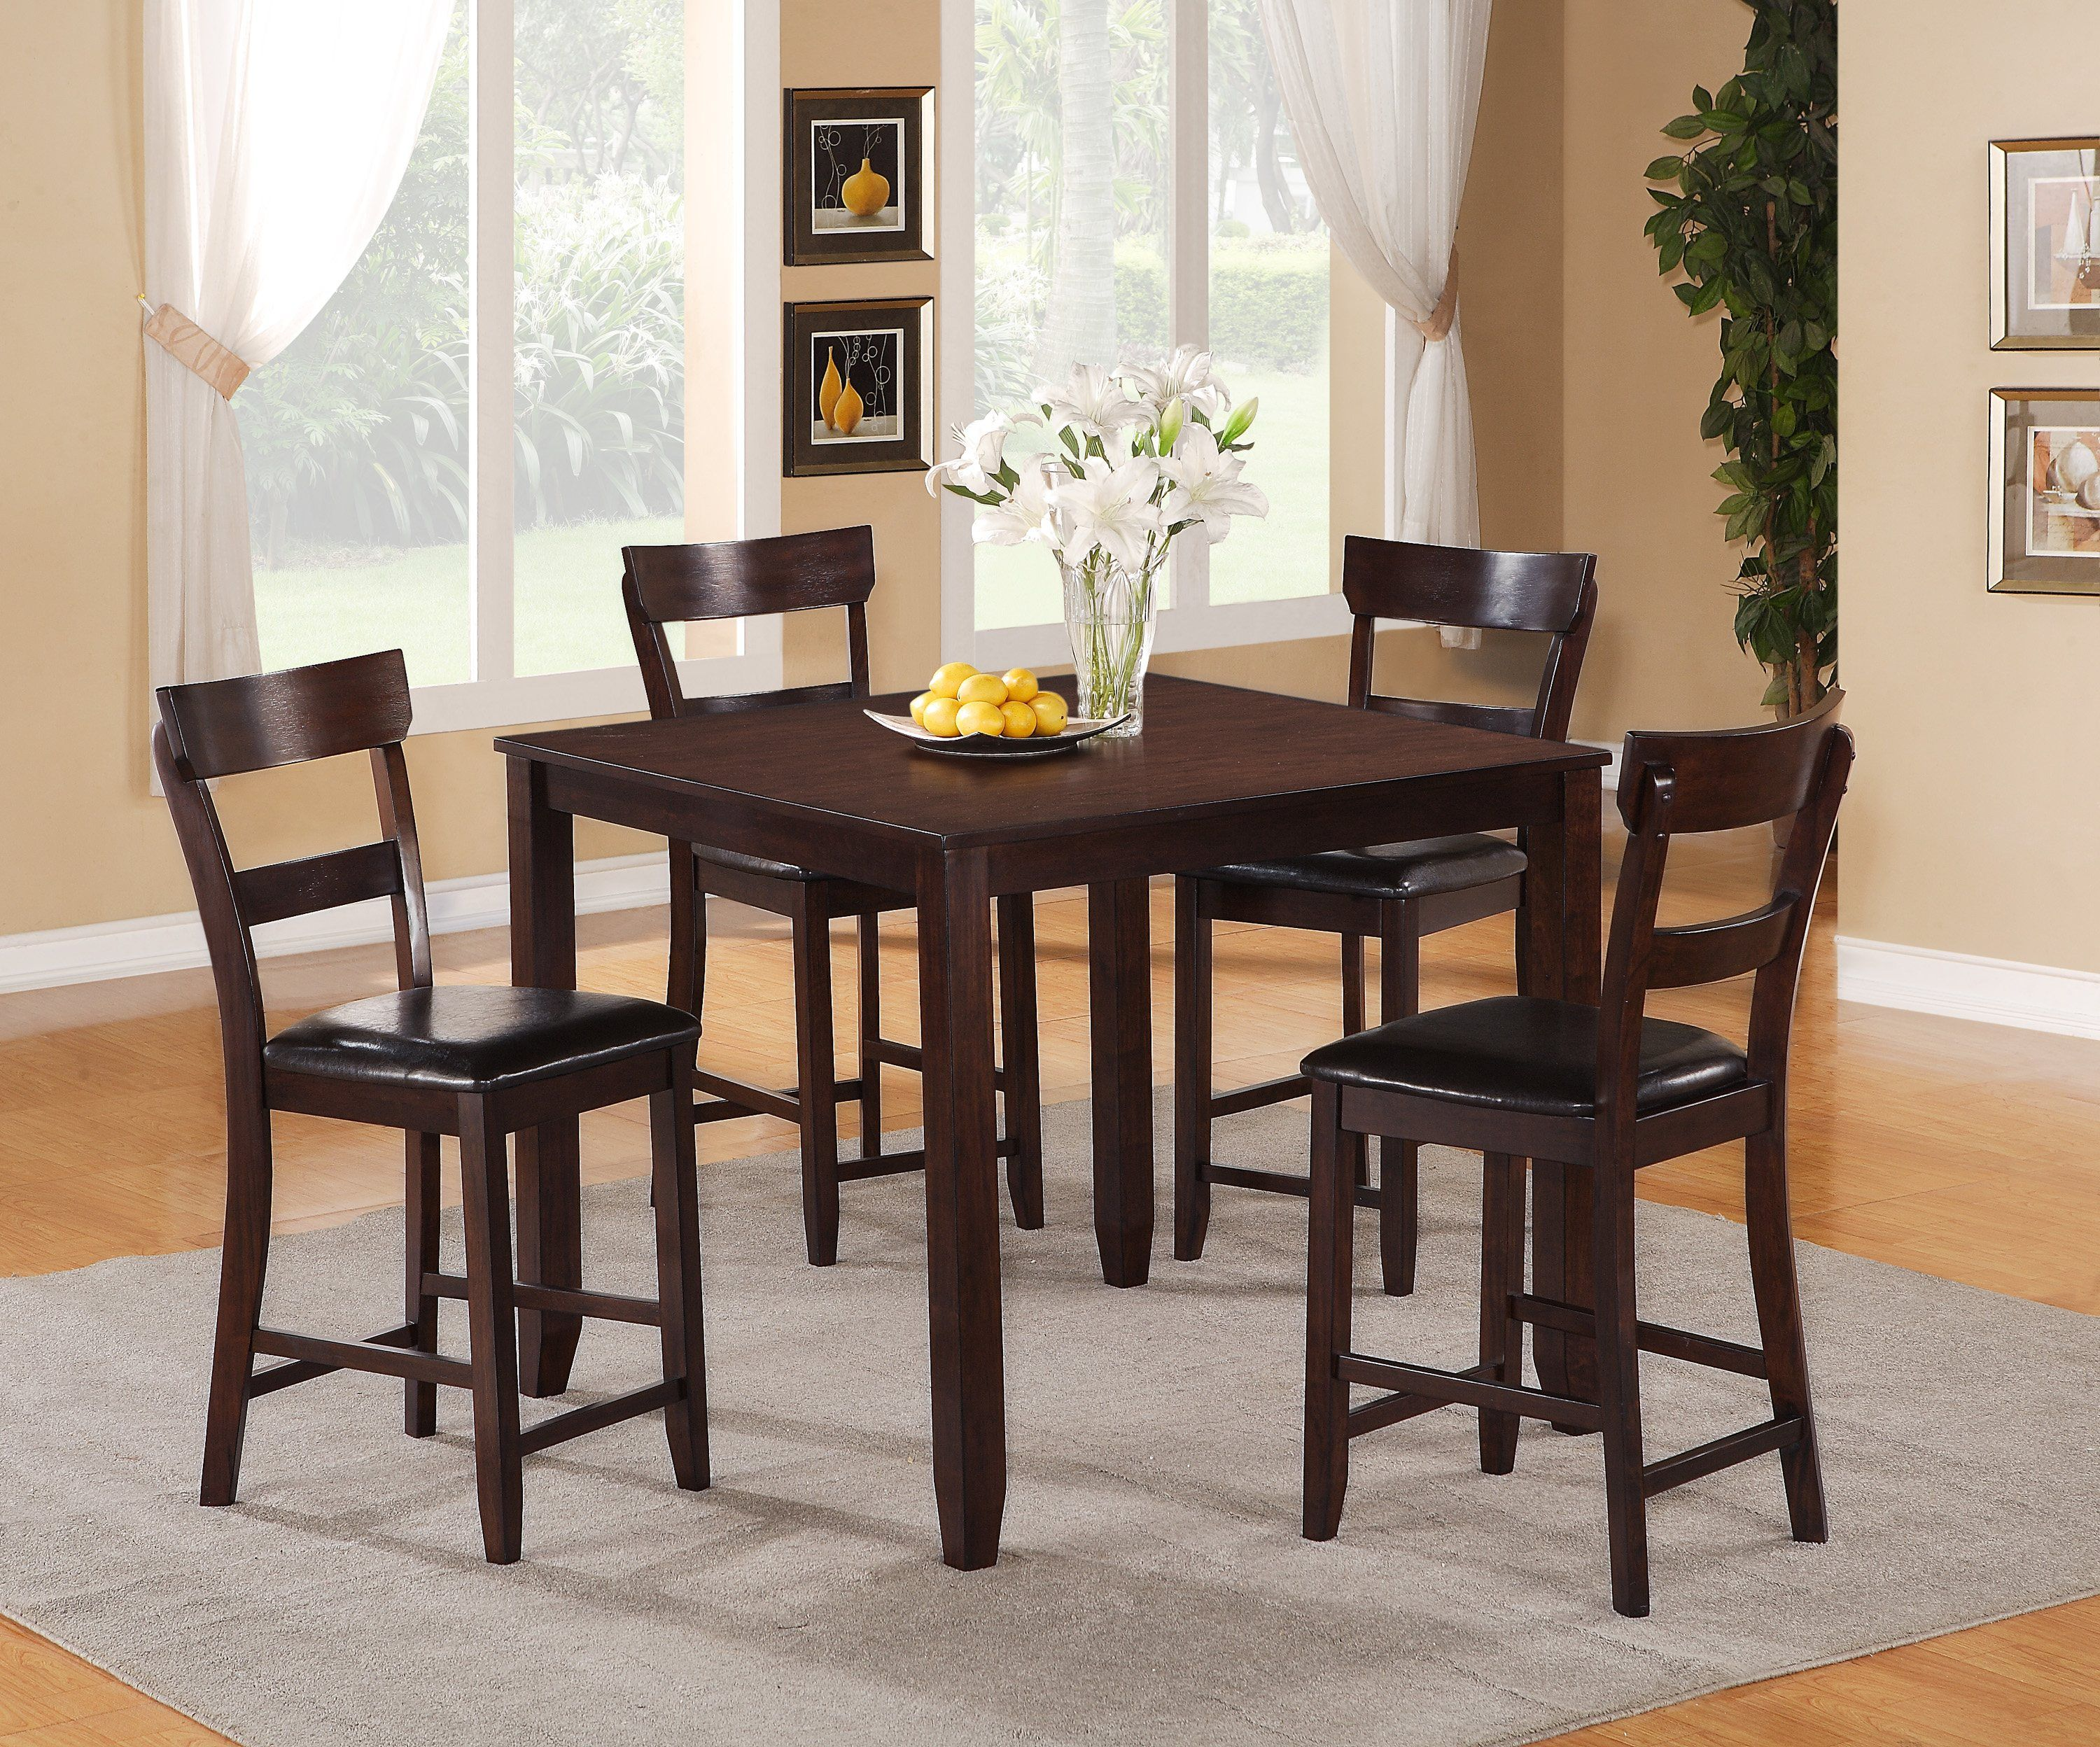 Darvin Clearance Outlet Tables Dining Room Sets Counter